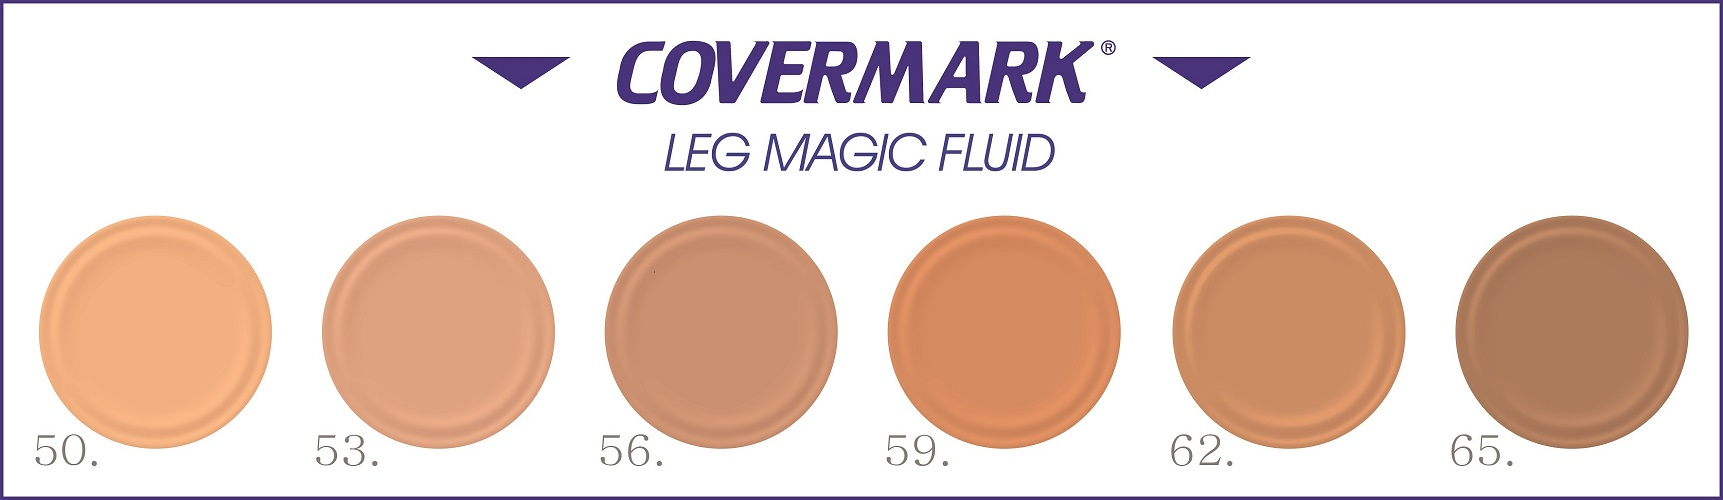 Covermark Leg Magic Fluid 65